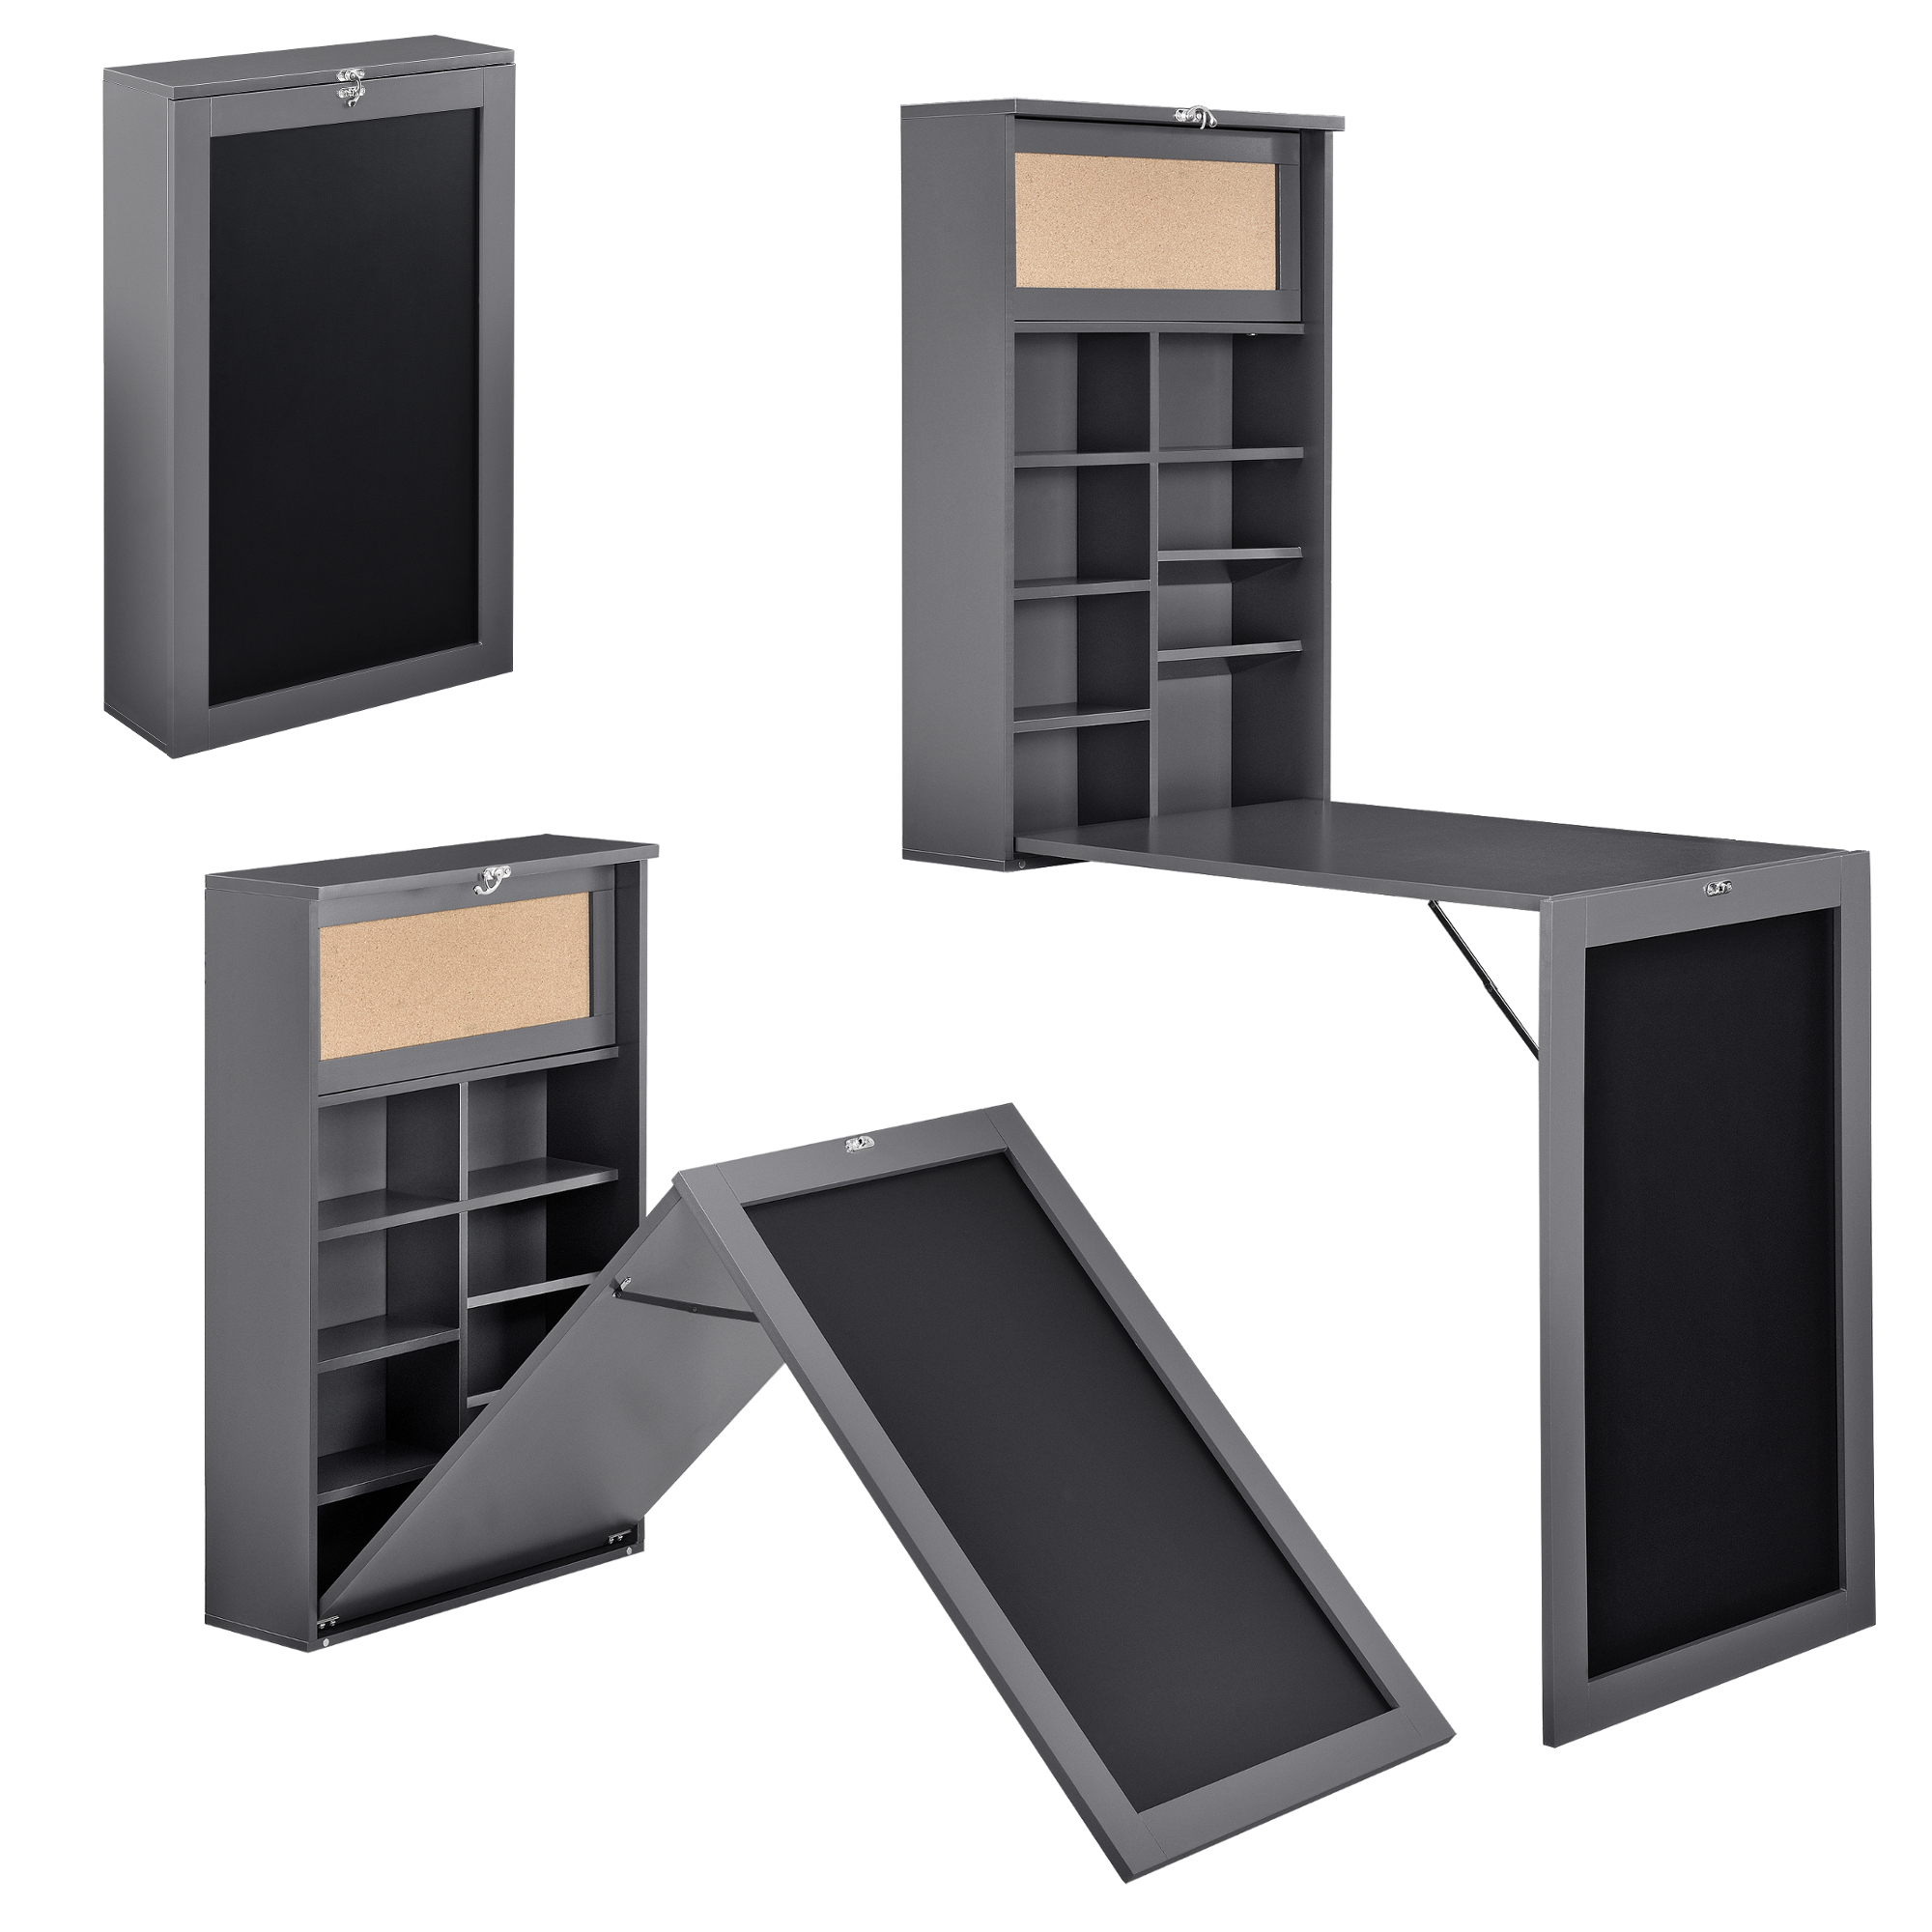 wandtisch grau schreibtisch tisch regal wand klapptisch aus klappbar ebay. Black Bedroom Furniture Sets. Home Design Ideas